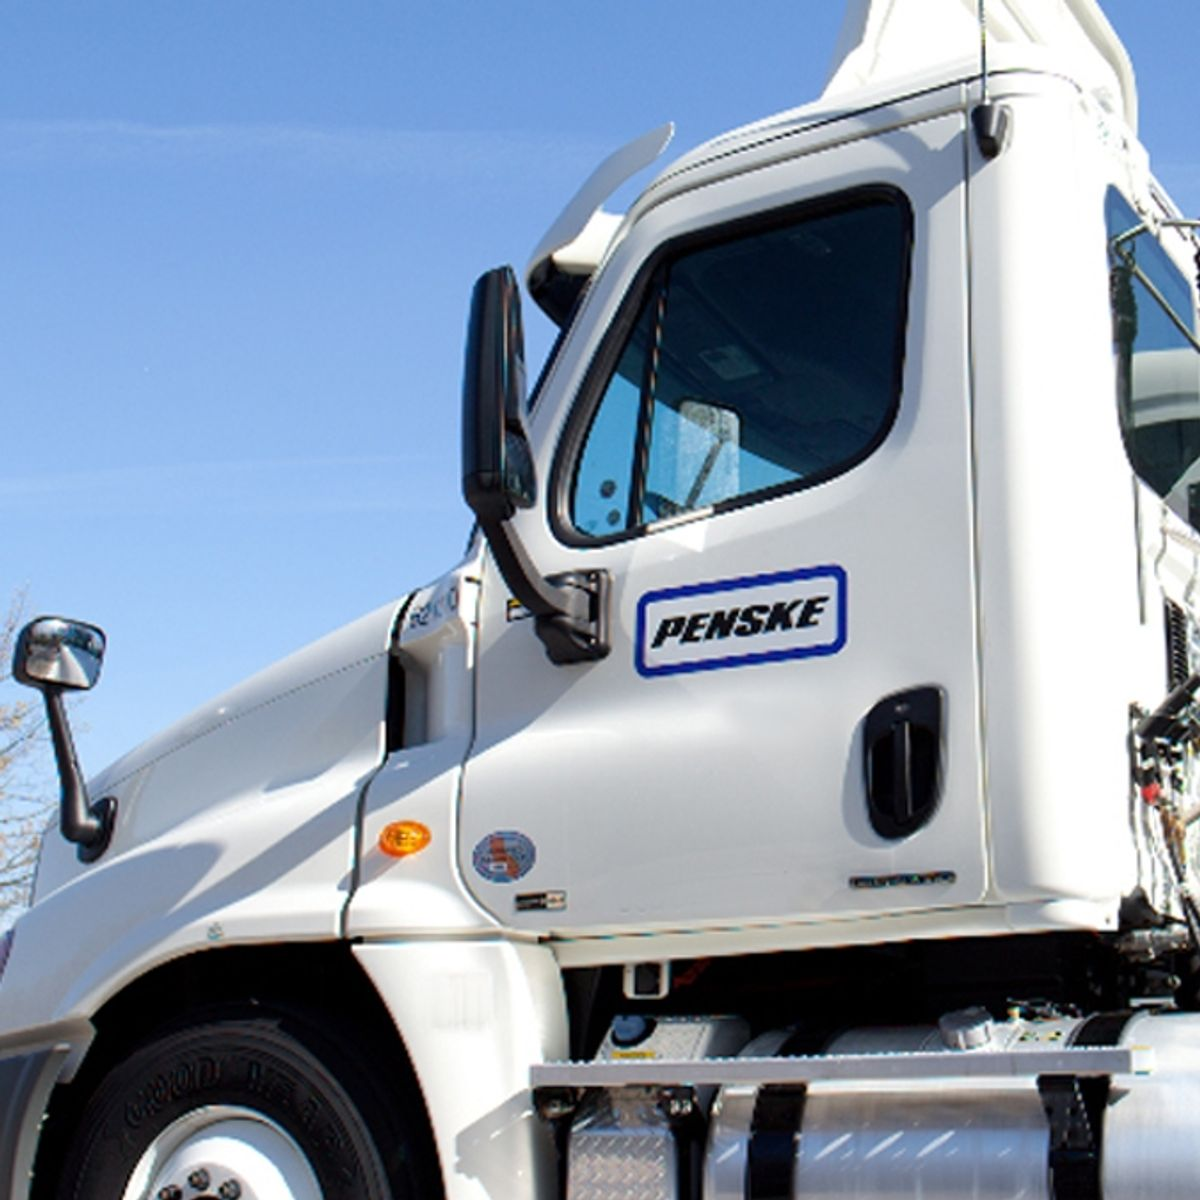 Penske Logistics to Present at Penn State Supply Chain Event